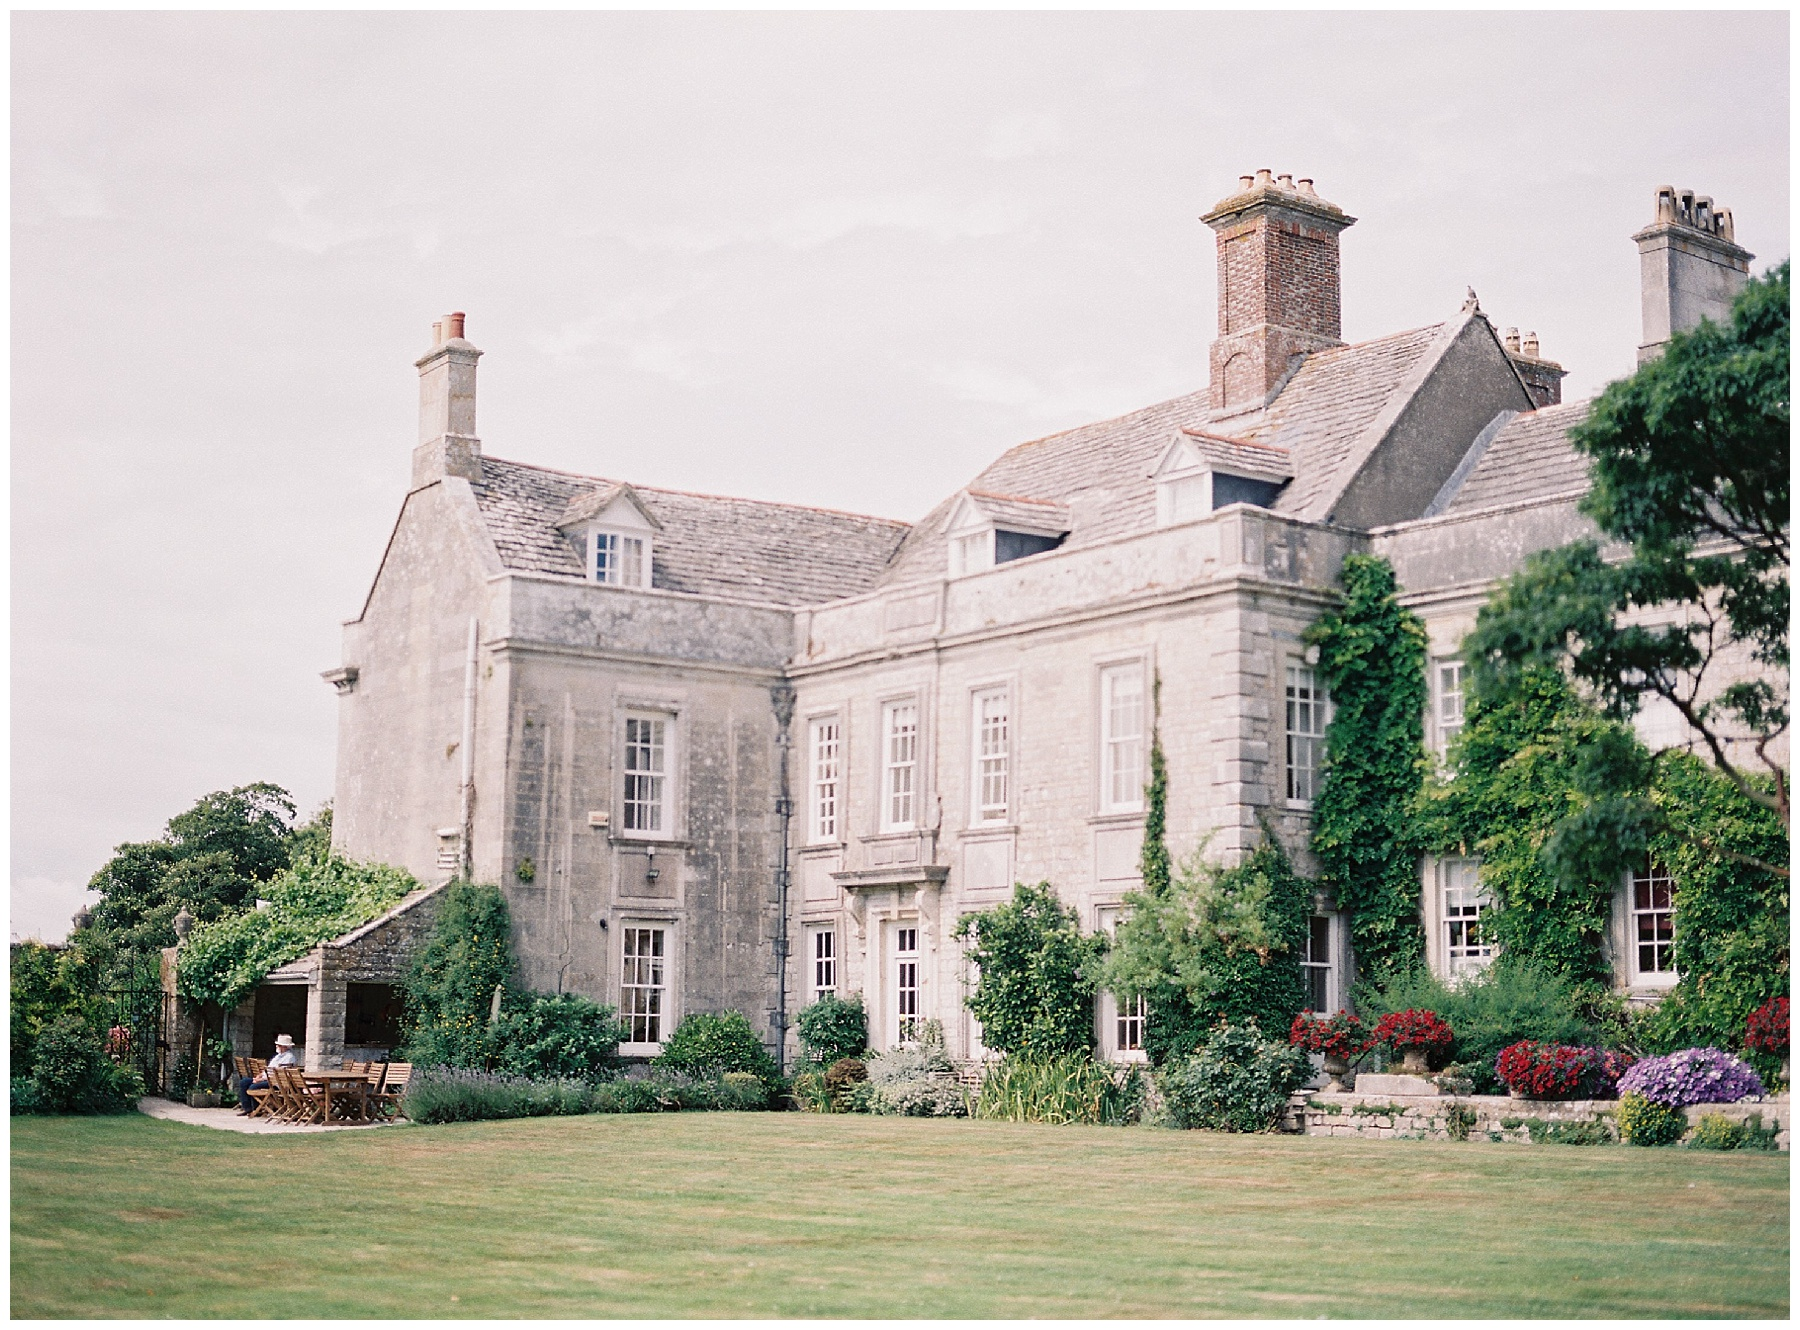 smedmore house wedding venue in dorset